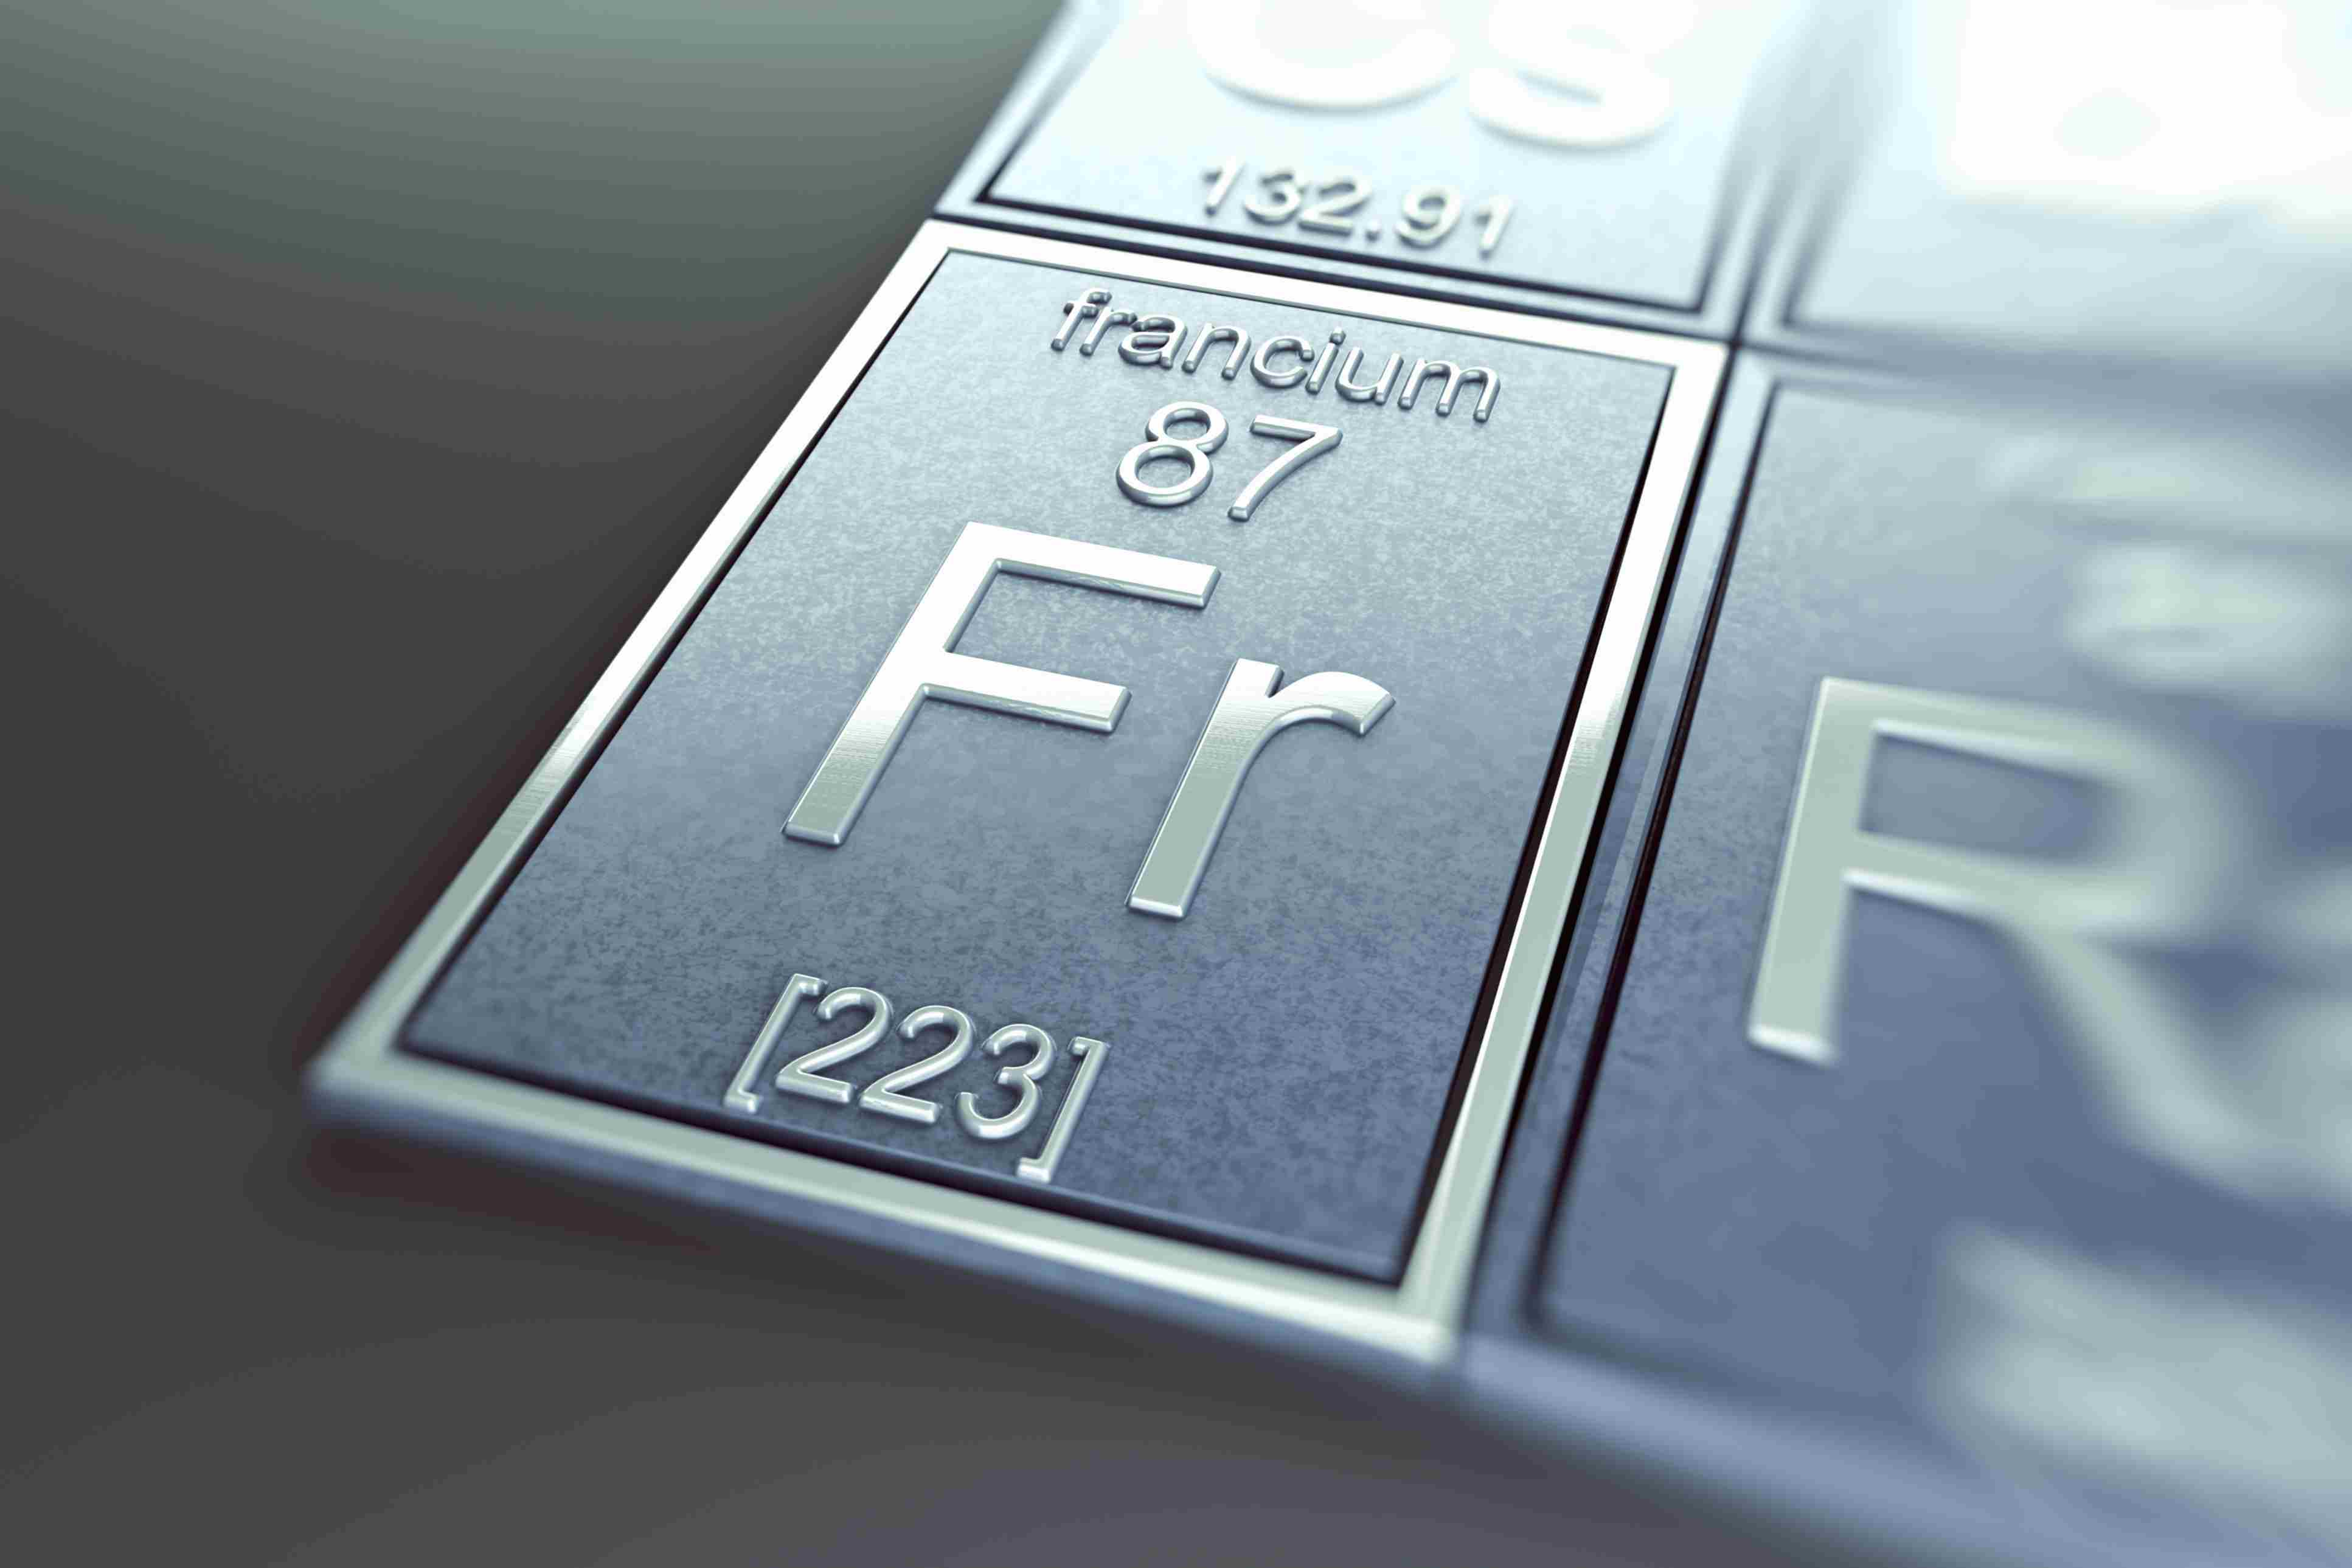 Francium and other alkali metals react vigorously with water. The pure element would like explode on contact with skin.